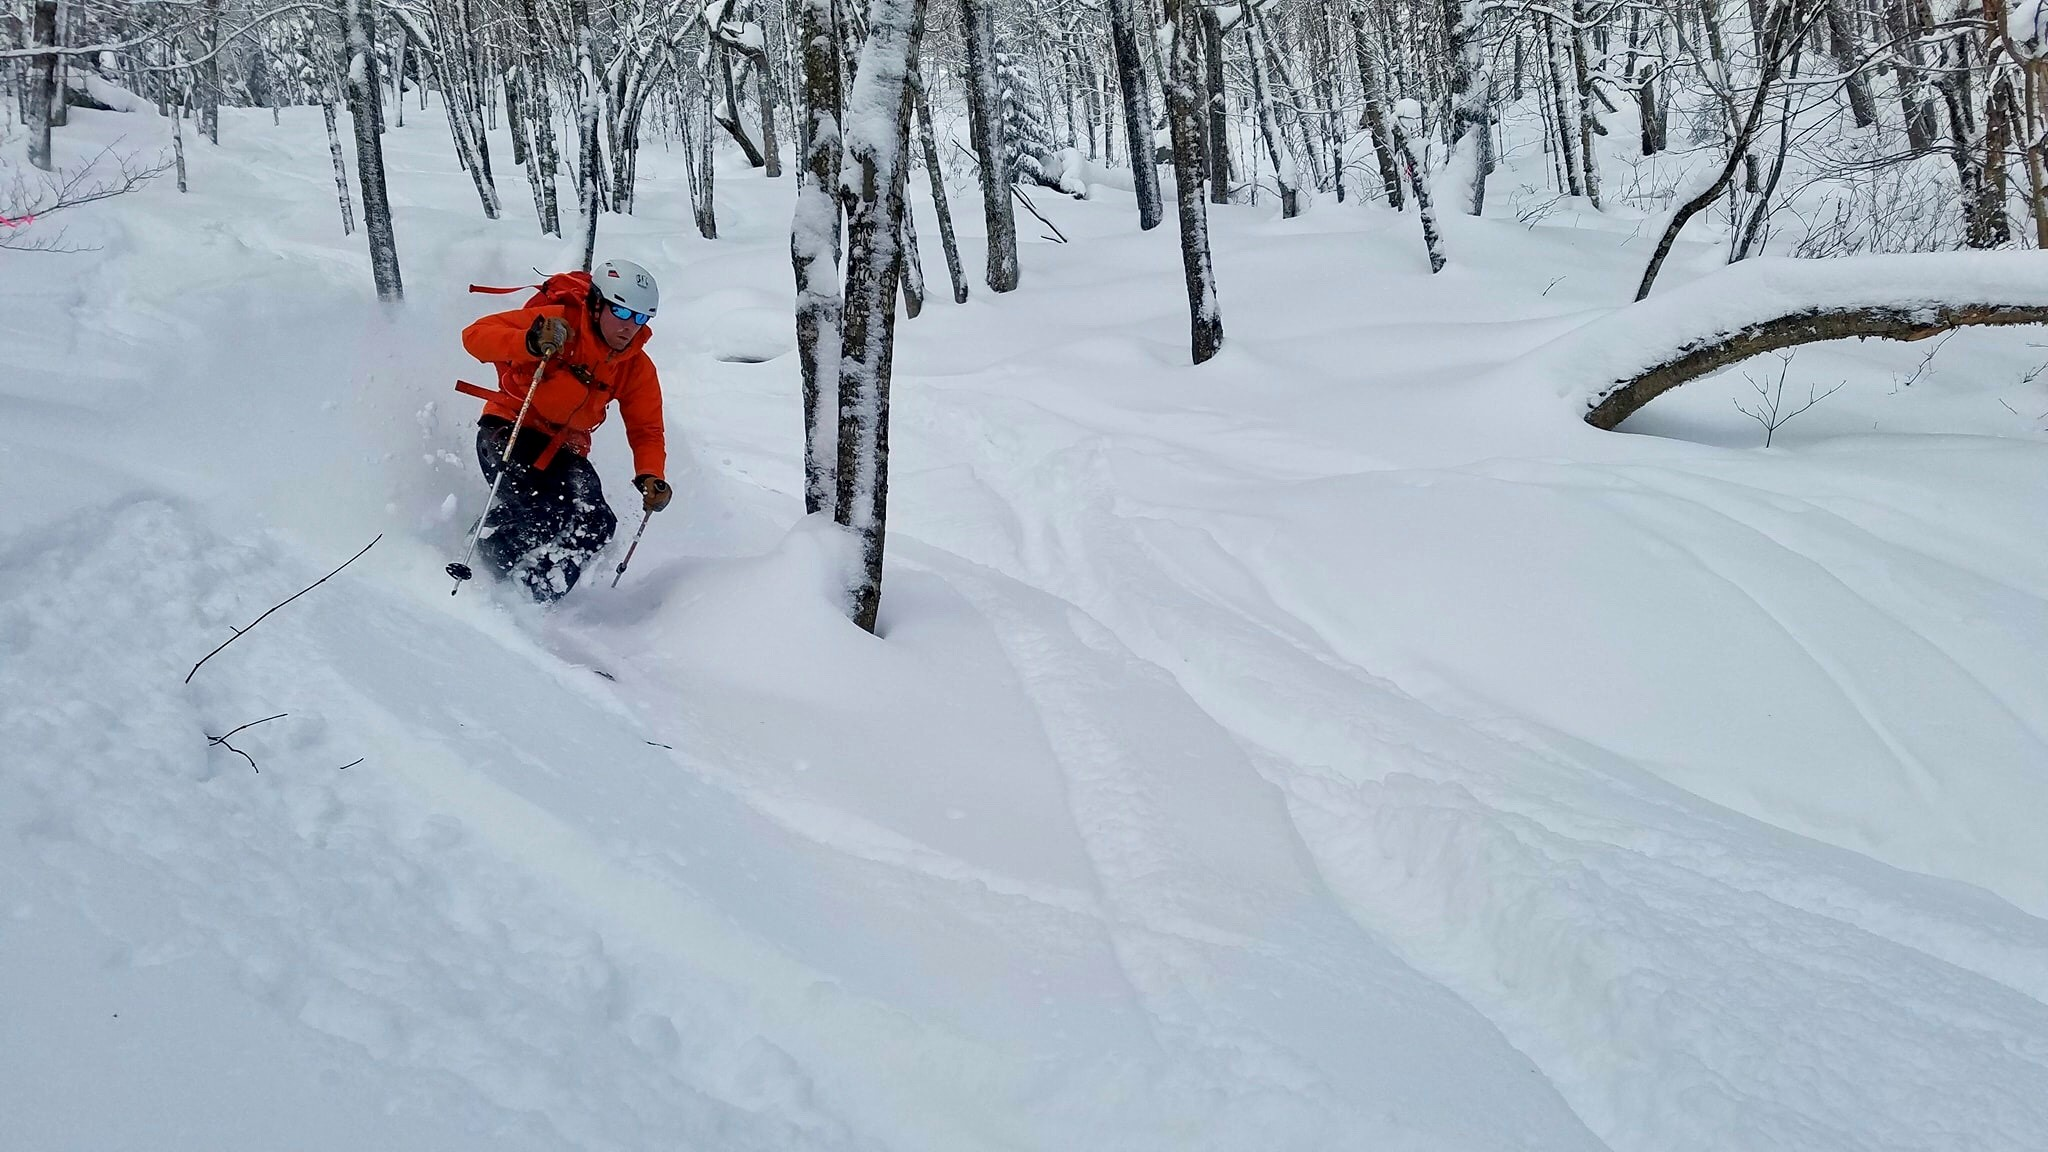 A Historic Moment For Backcountry Skiing in New Hampshire